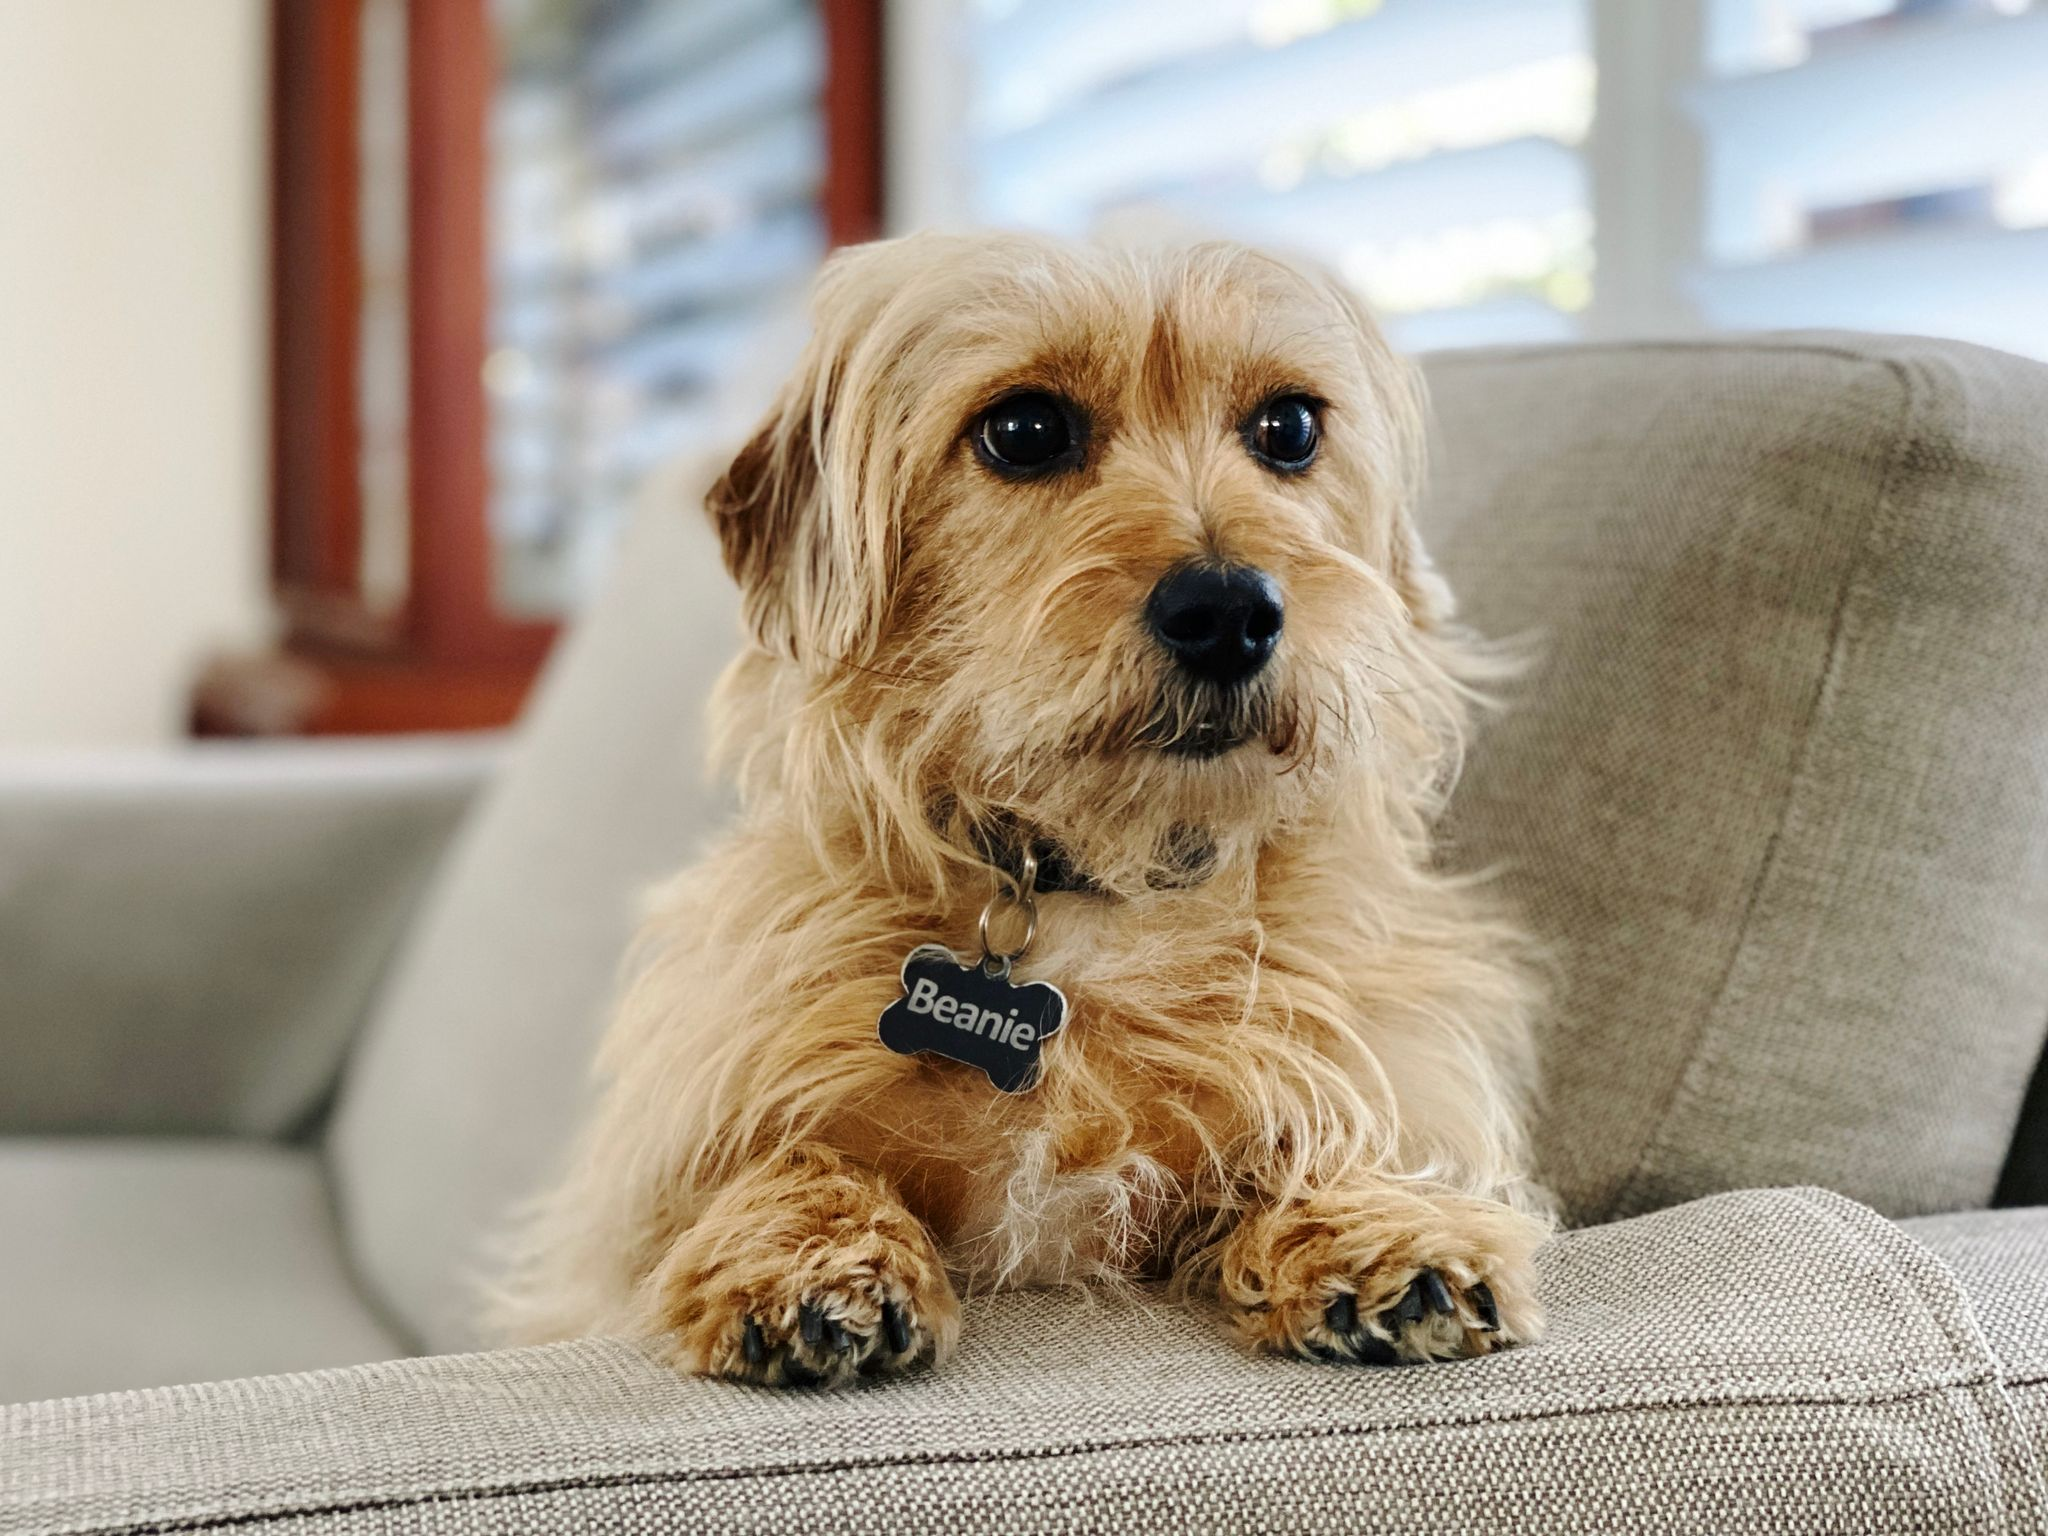 A photo of a small scruffy blonde dog sitting up with his front paws on the arm of a lounge.